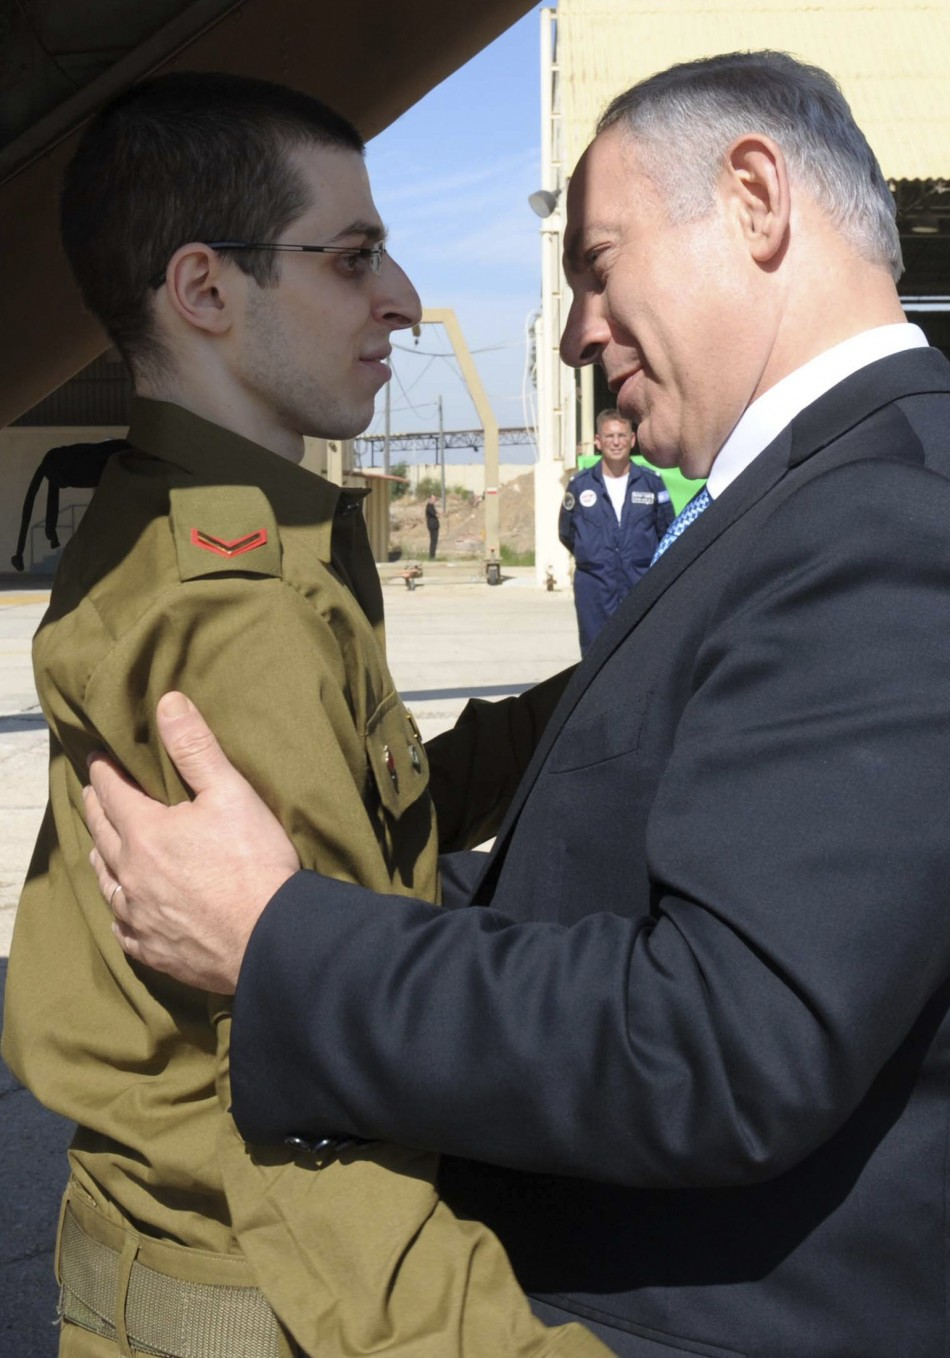 Israel's Prime Minister Benjamin Netanyahu (R) greets Israeli soldier Gilad Shalit at Tel Nof air base in central Israel in this handout picture released October 18